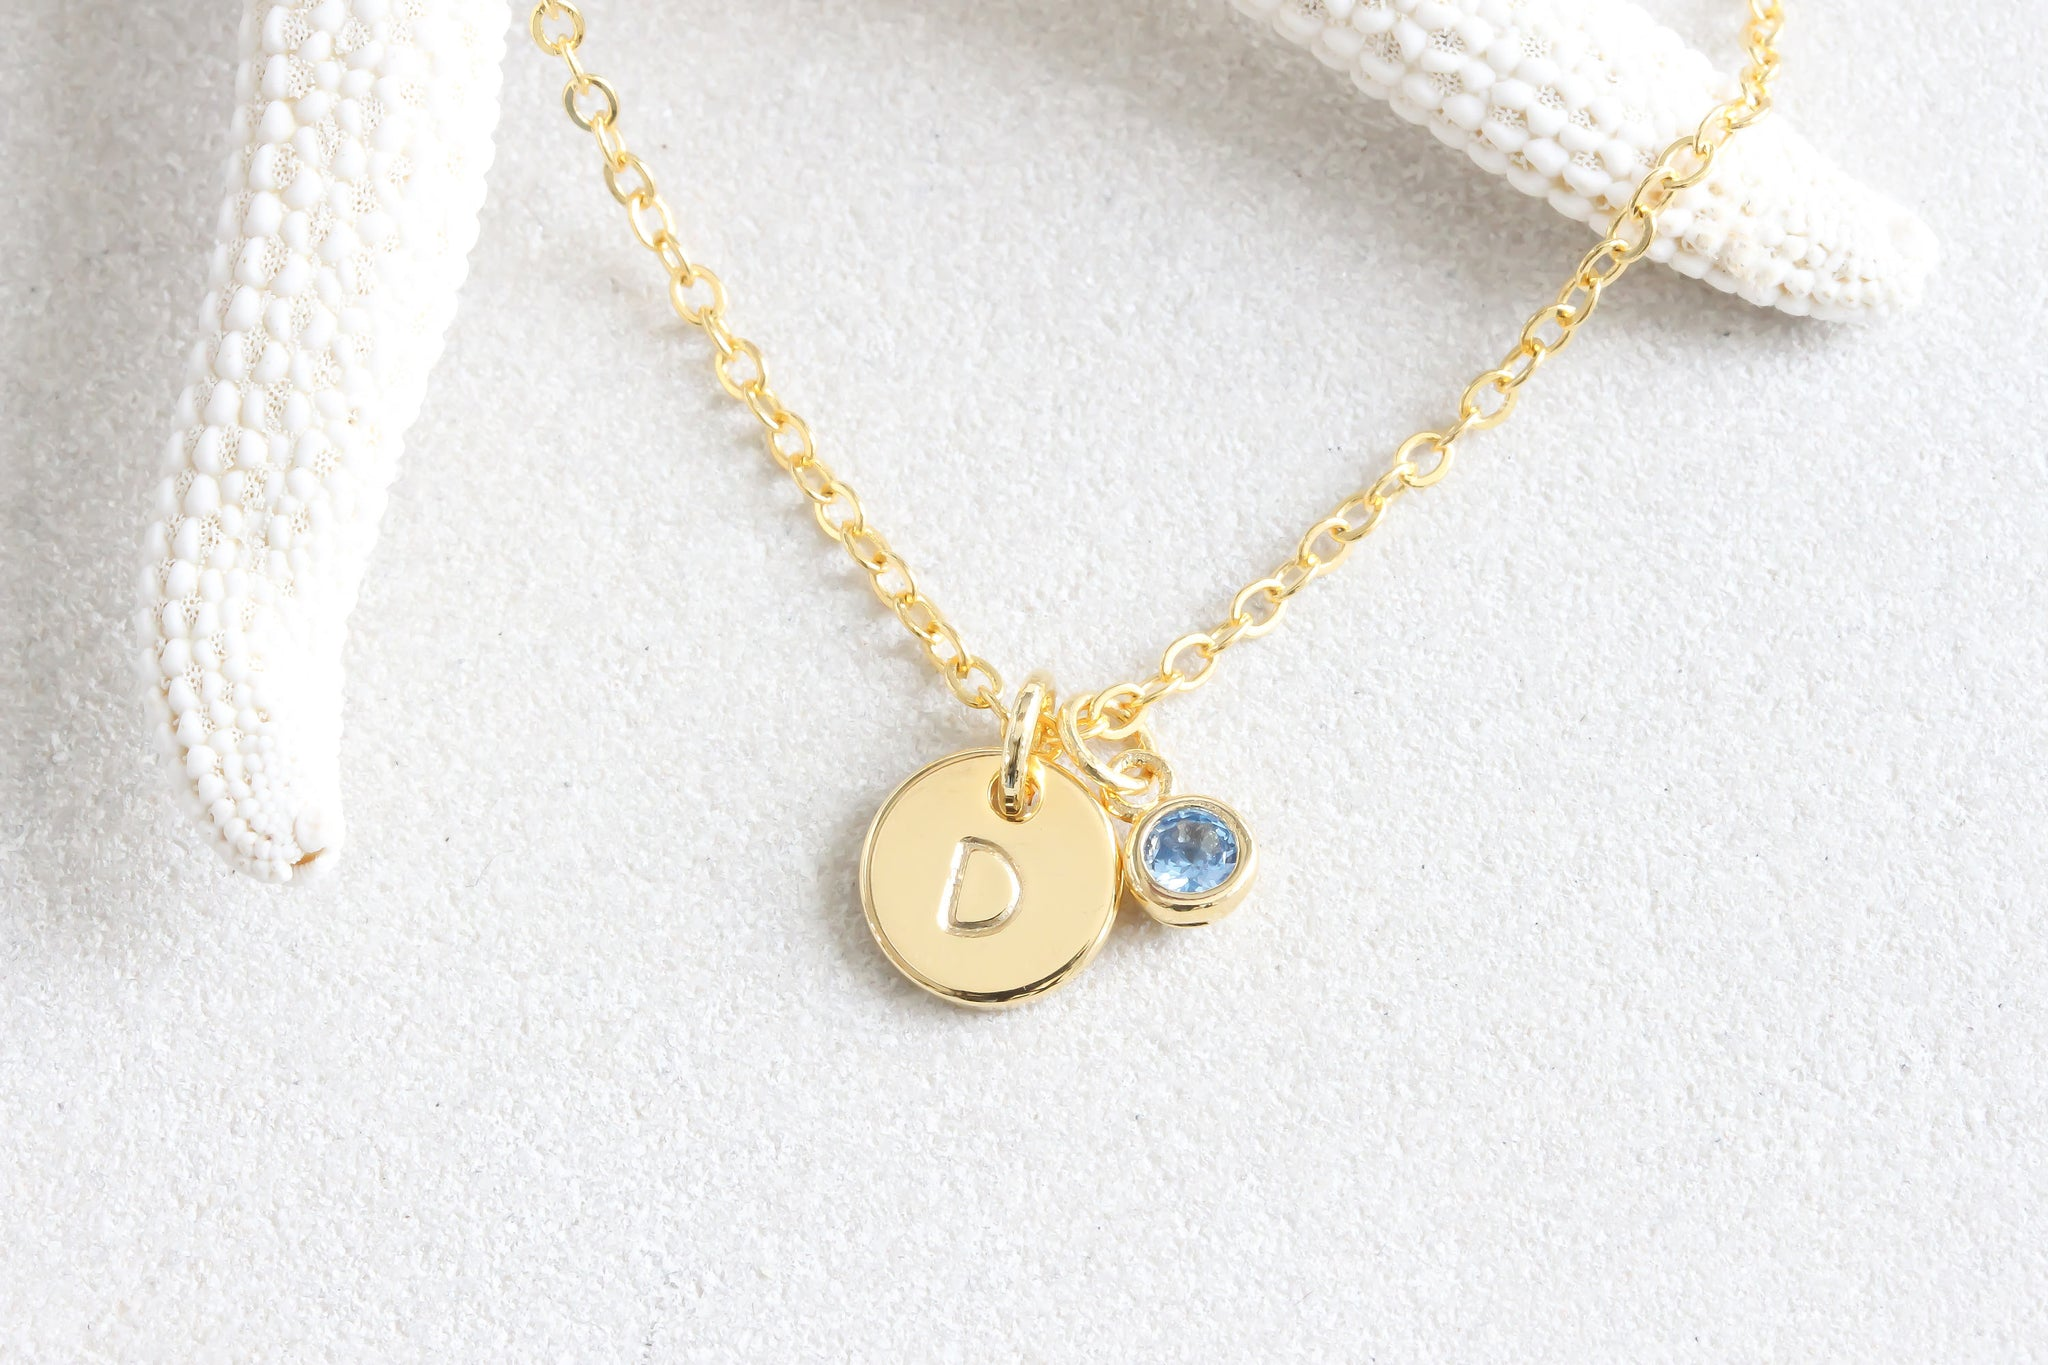 Tiny Gold Dot initial hand Stamped Disc Birthstone Necklace, Bridesmaids Letter Necklace Small Minimalist Necklace Jewelry - product_type] - Beautiz